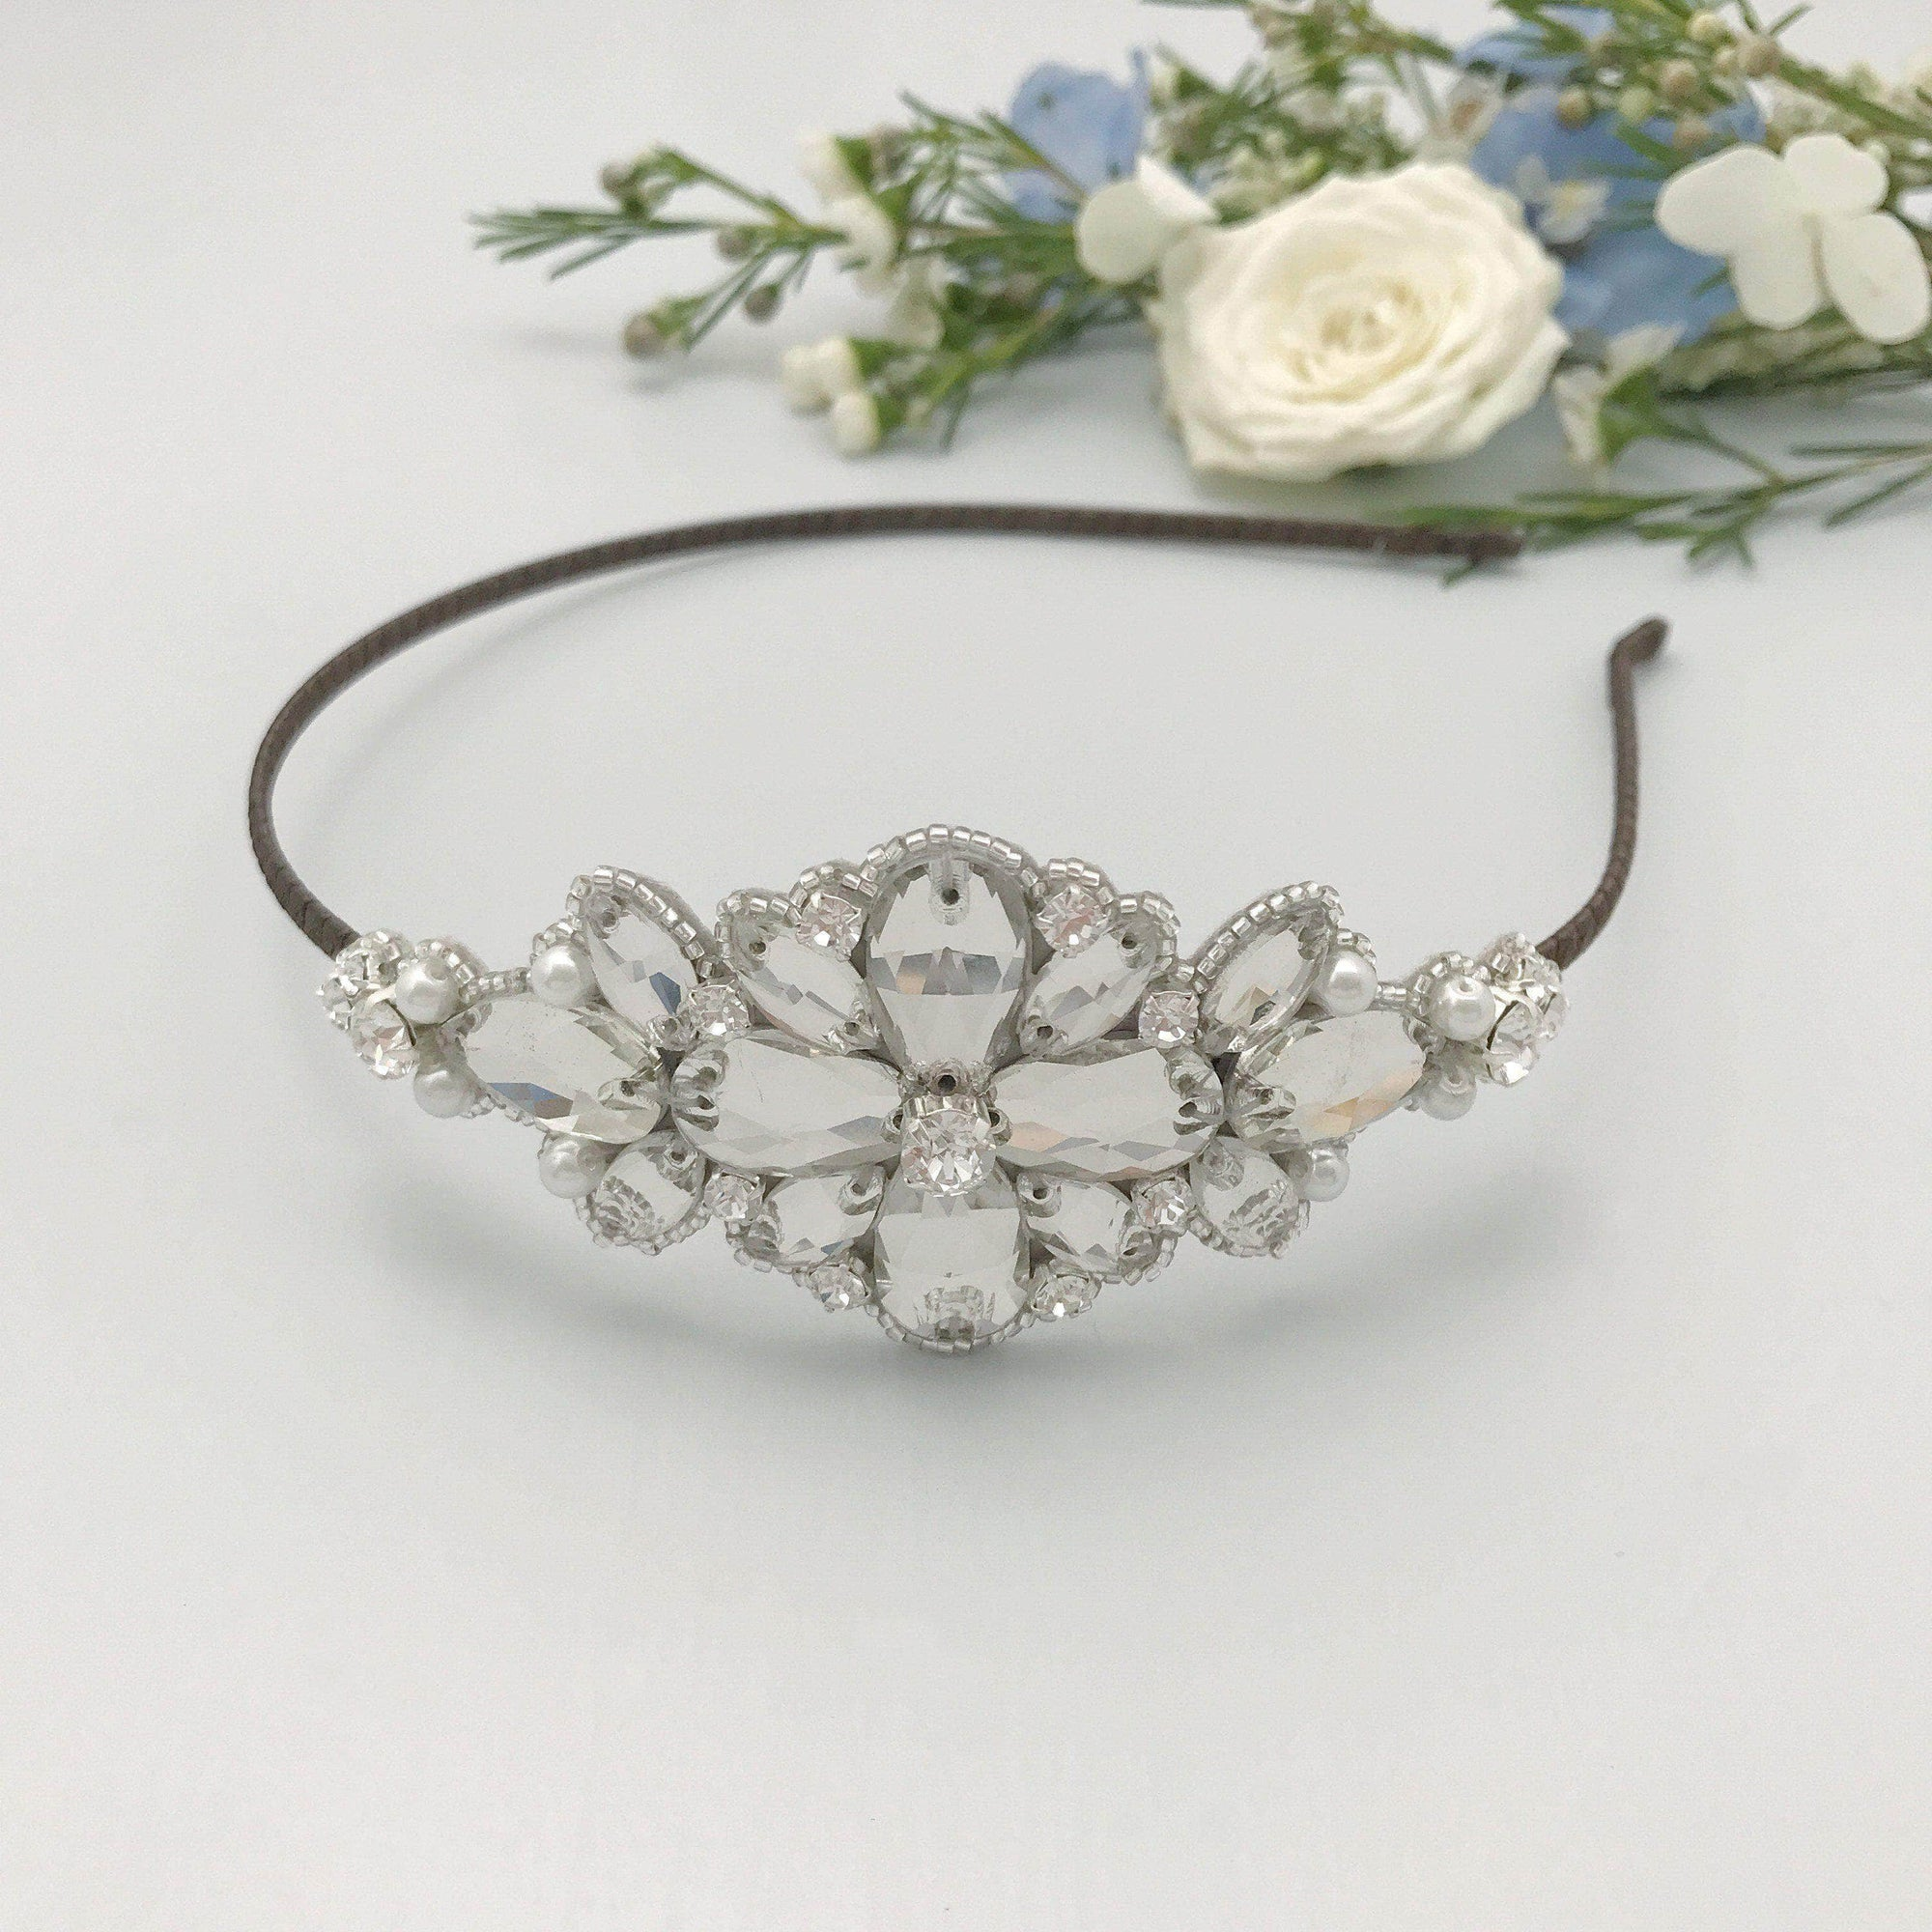 Wedding Headband Silver wedding headband with crystals and pearls - 'Charia'